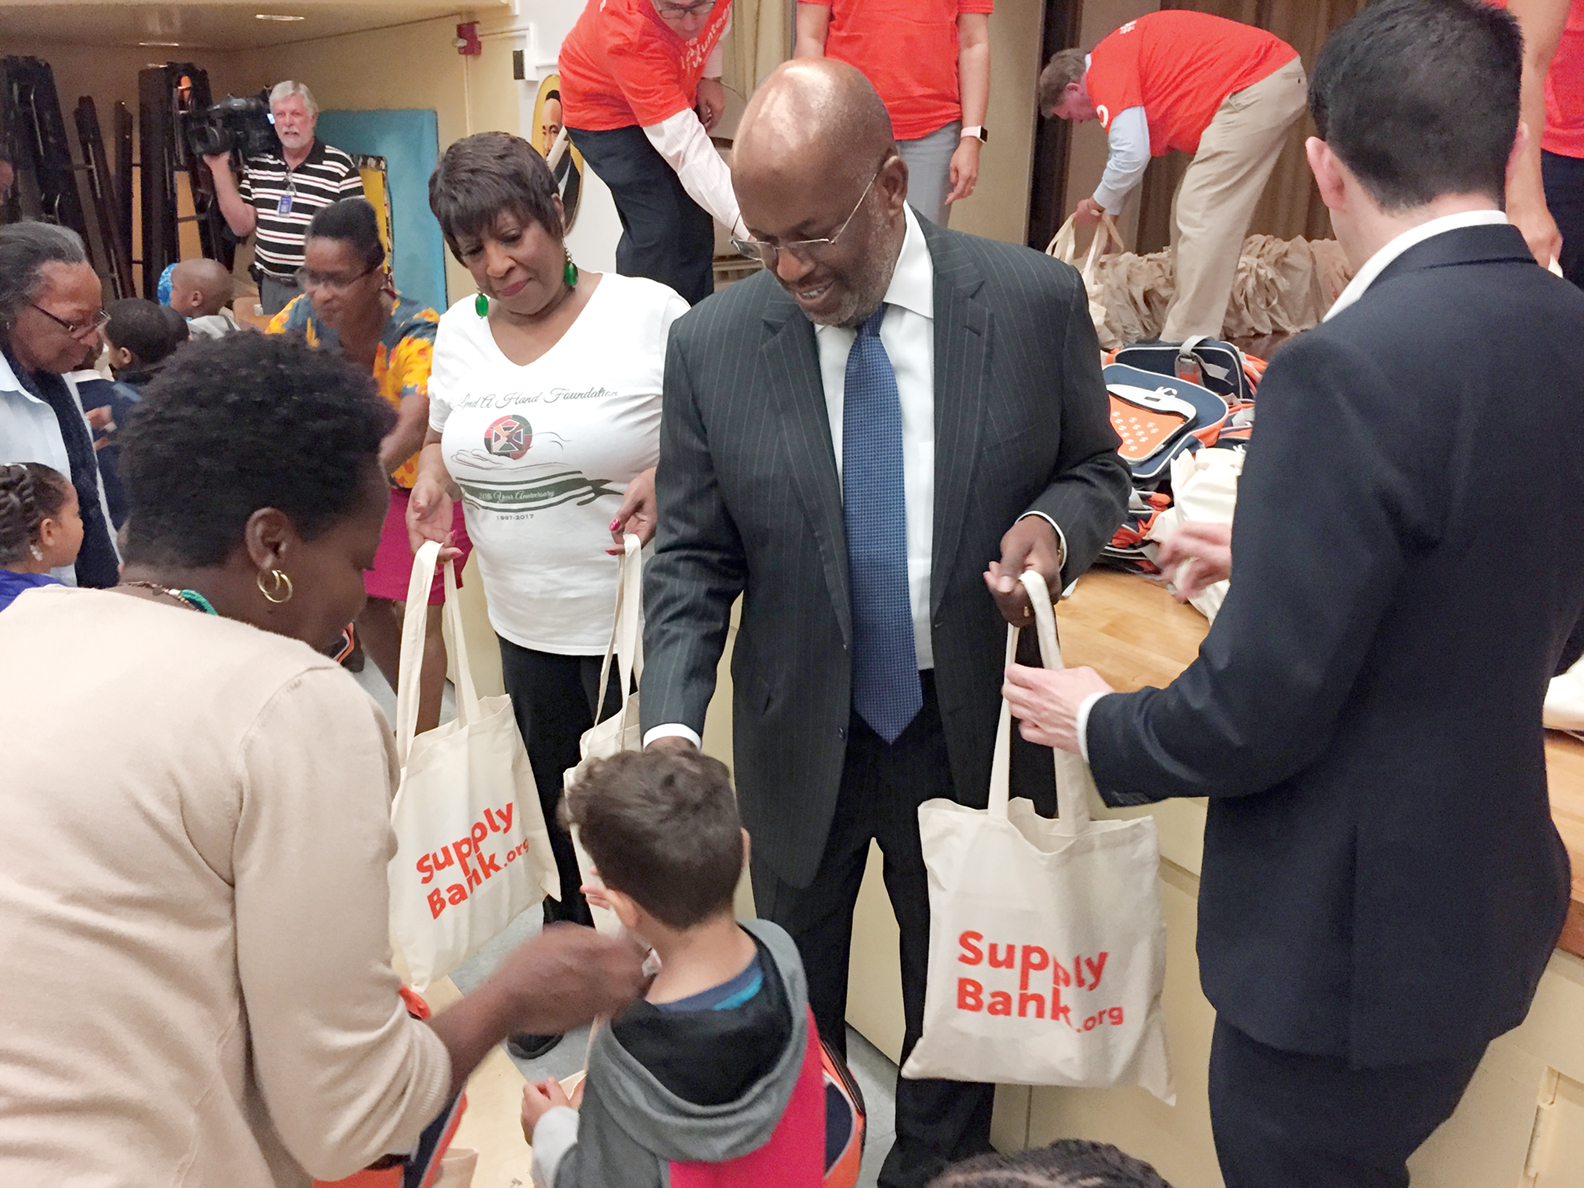 Bernard J. Tyson helps pass out backpacks and school kits to students at Martin Luther King Jr. Elementary School in Oakland.